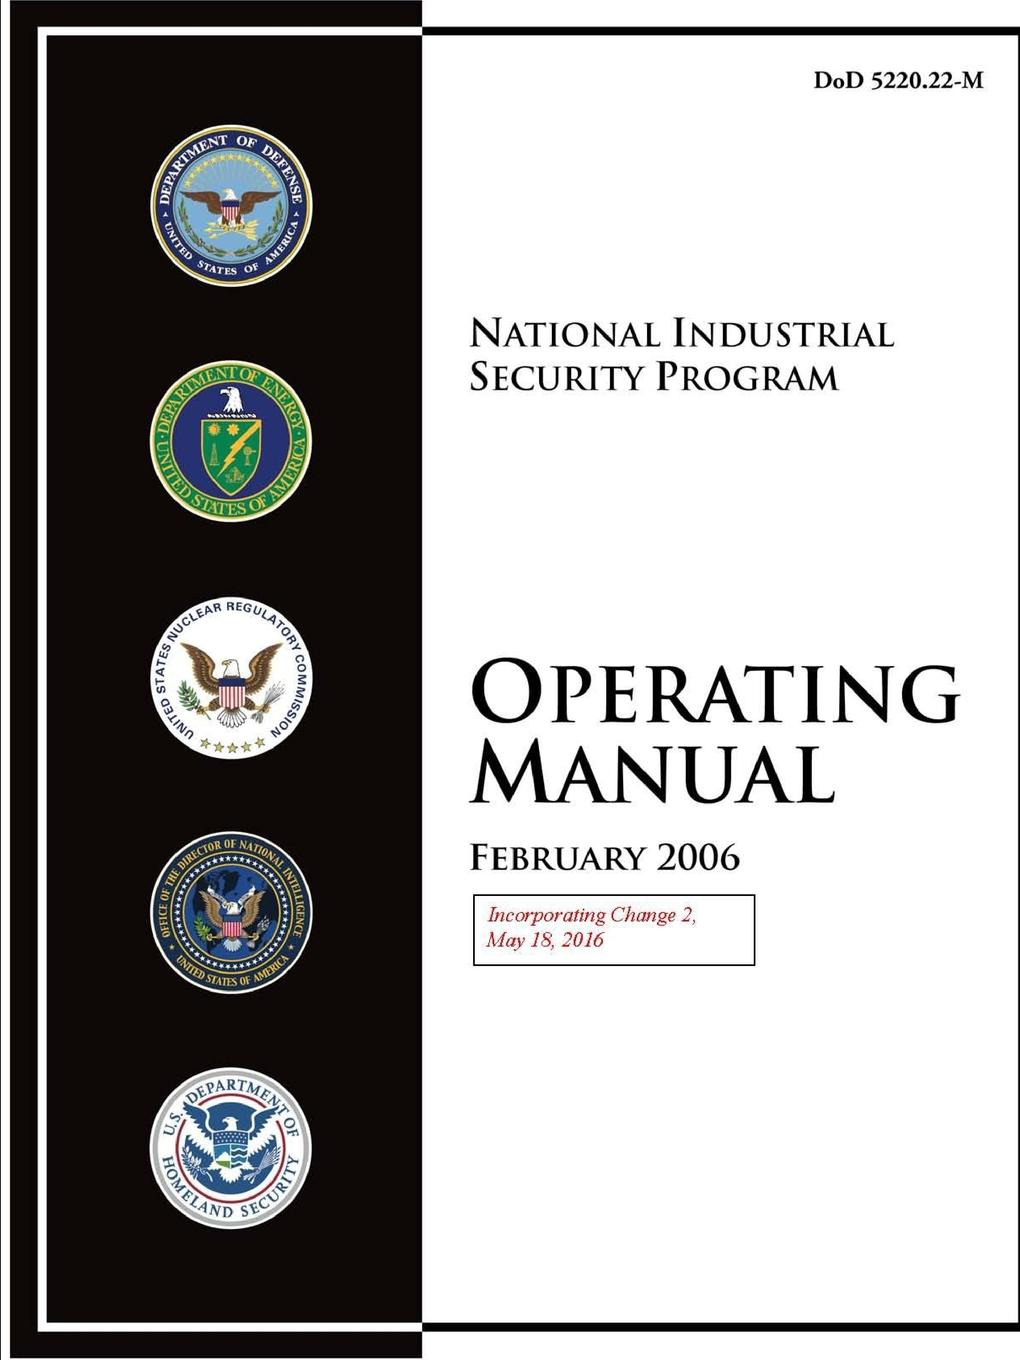 Department of Defense National Industrial Security Program Operating Manual (Incorporating Change 2, May 18, 2016) effectiveness of witness security program